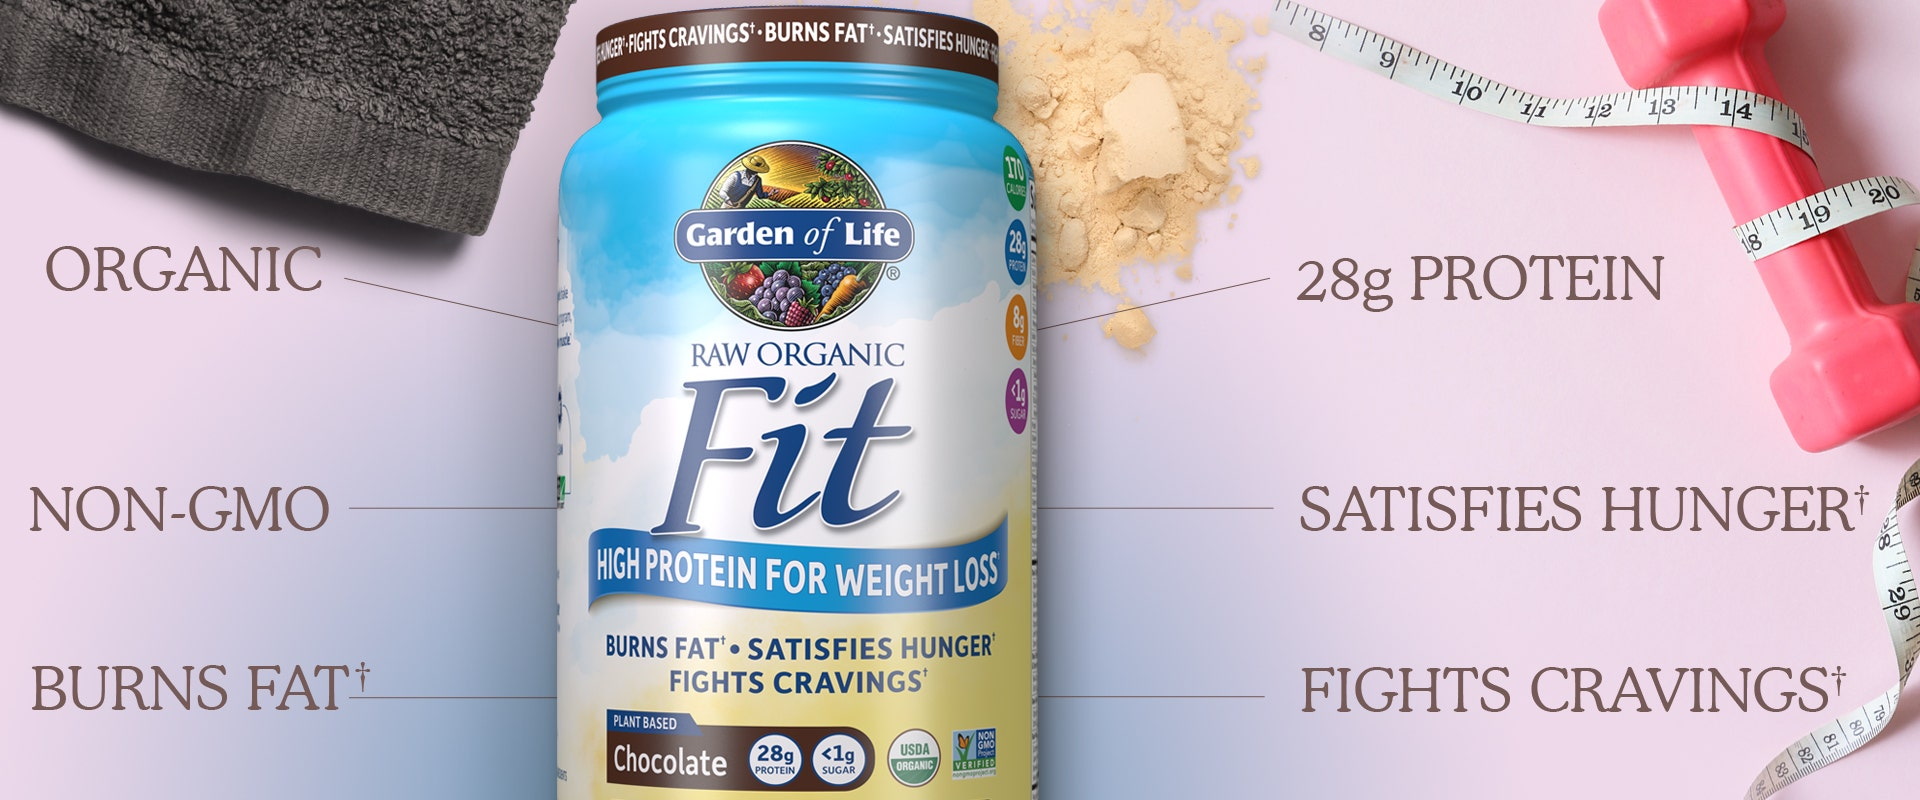 Raw Organic Fit weight loss Protein Powder by Garden of Life